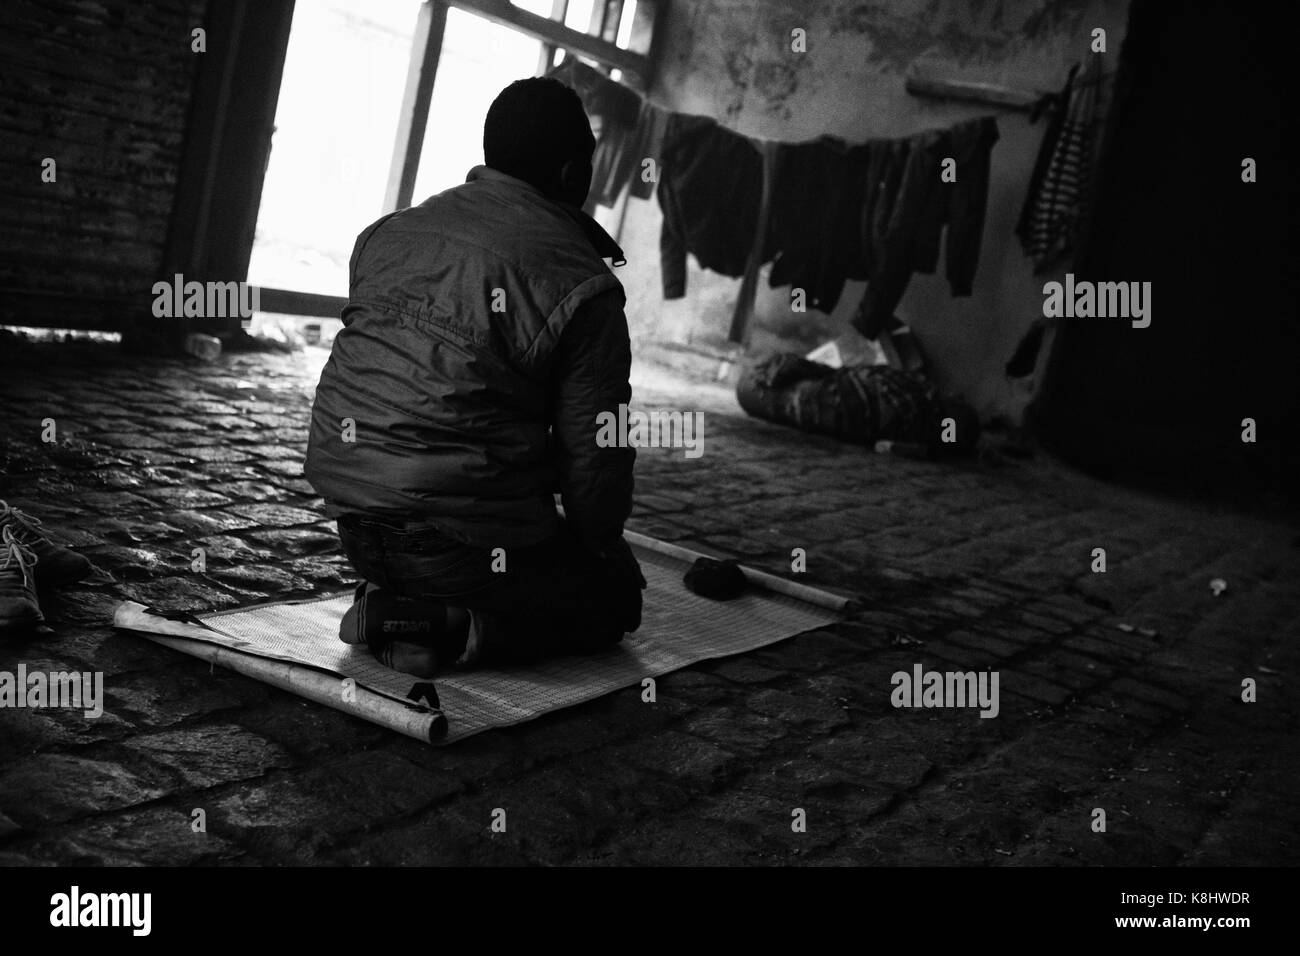 A Sudanese asylum seeker prays toward Mecca in an illegal, abandoned warehouse called 'Africa House' in - Stock Image